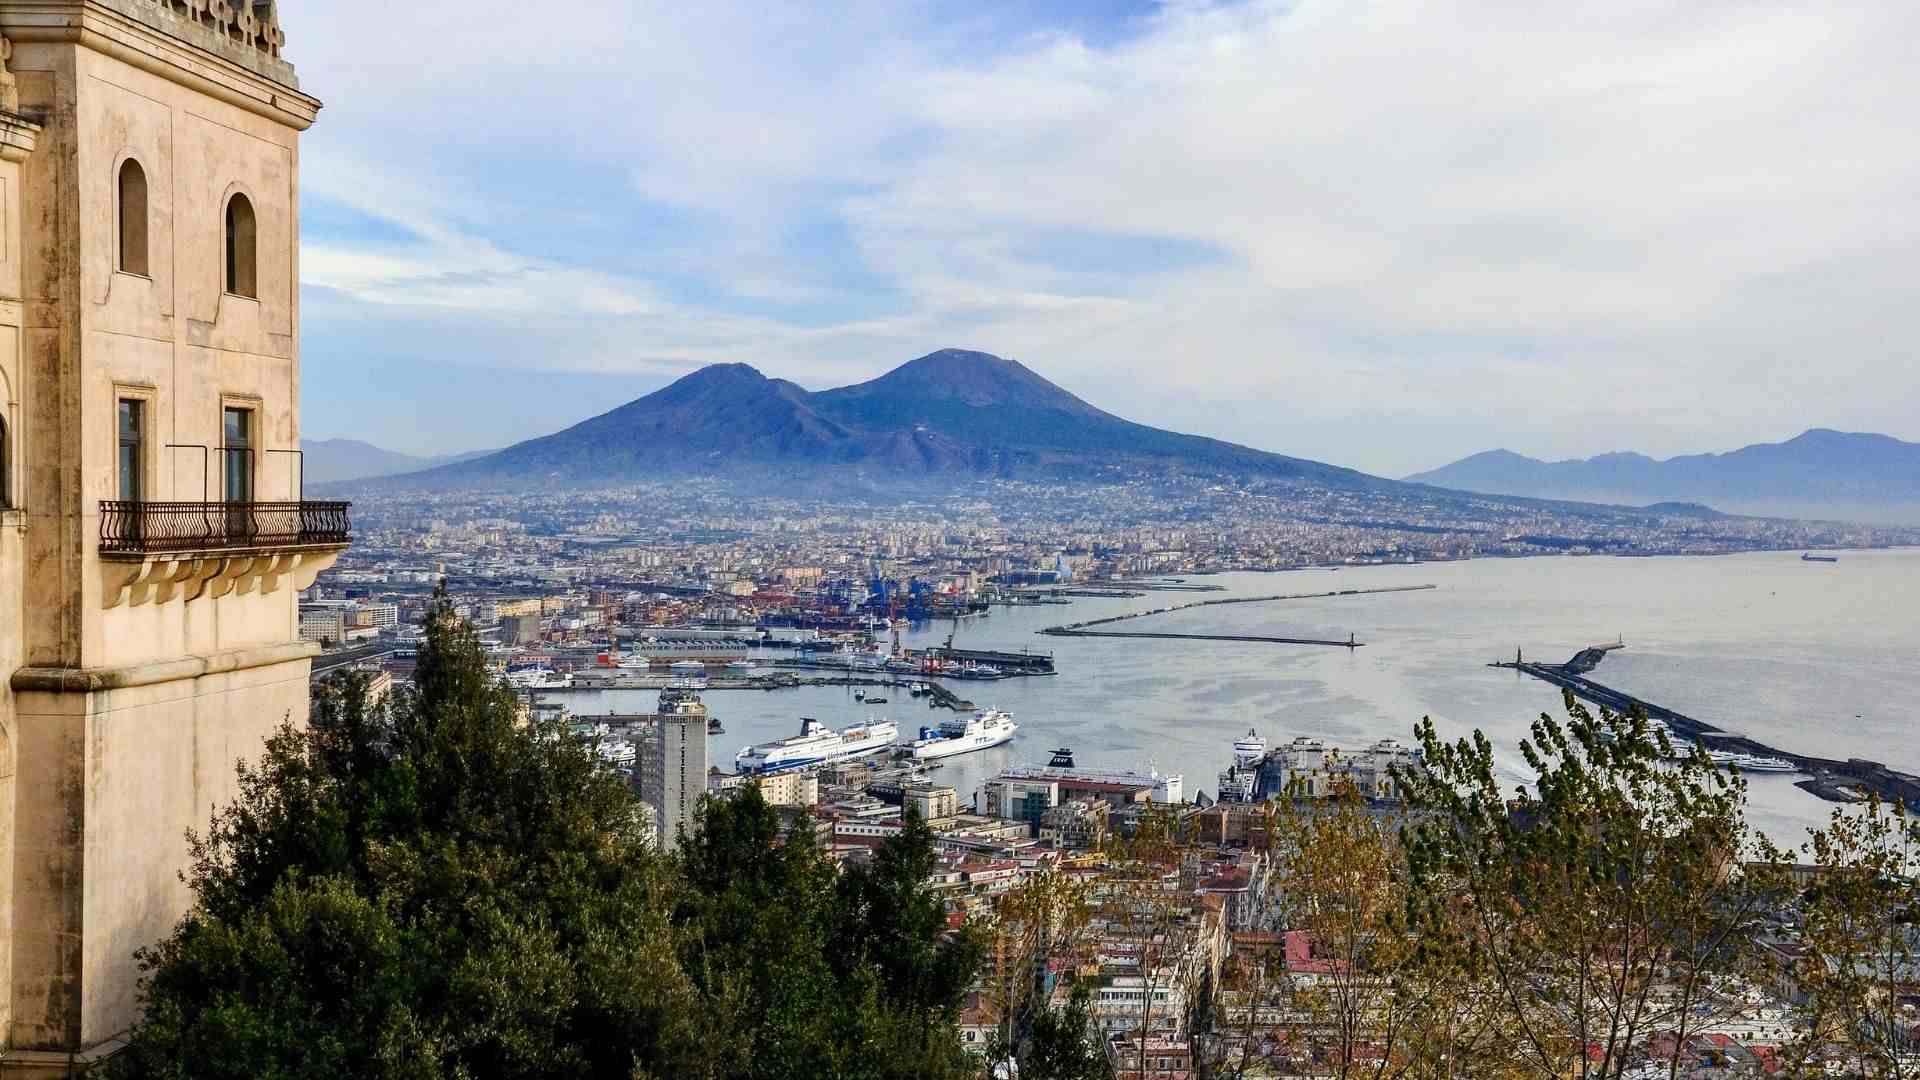 Mount Vesuvius and the city of Naples